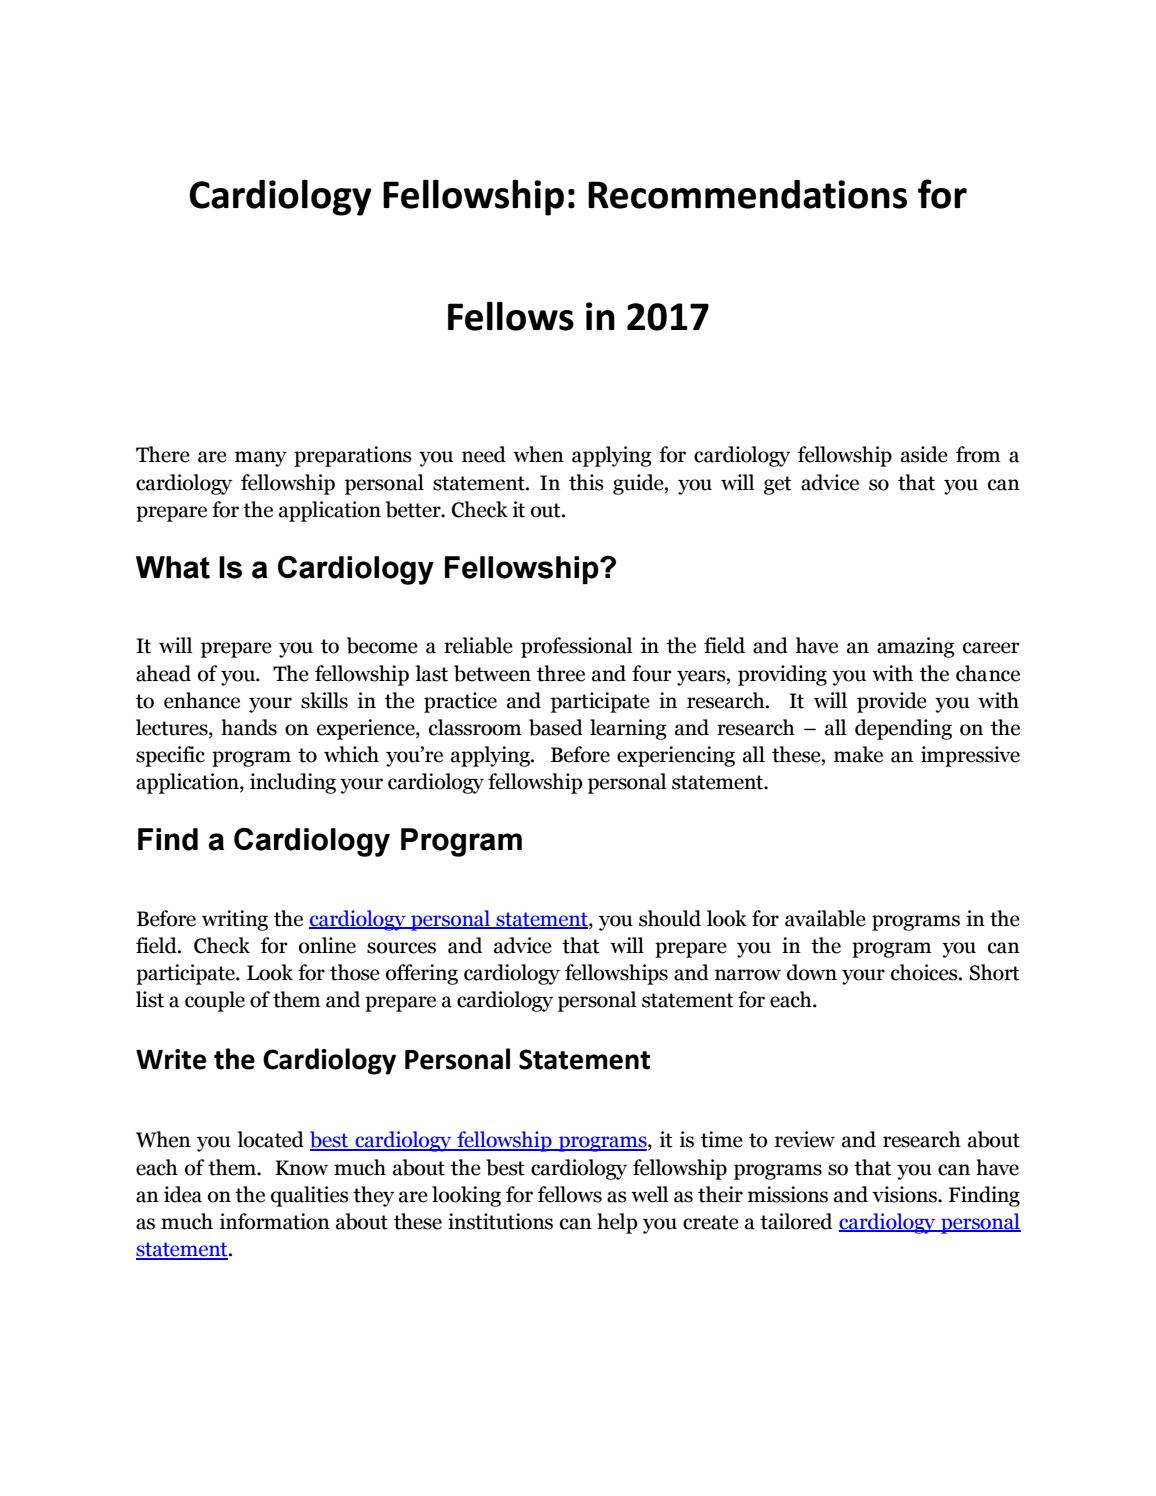 cardiology fellowship application personal statement Types of expository writing cardiology fellowship personal statement sample homework help genetic problems foreshadowing in a tale of two cities.